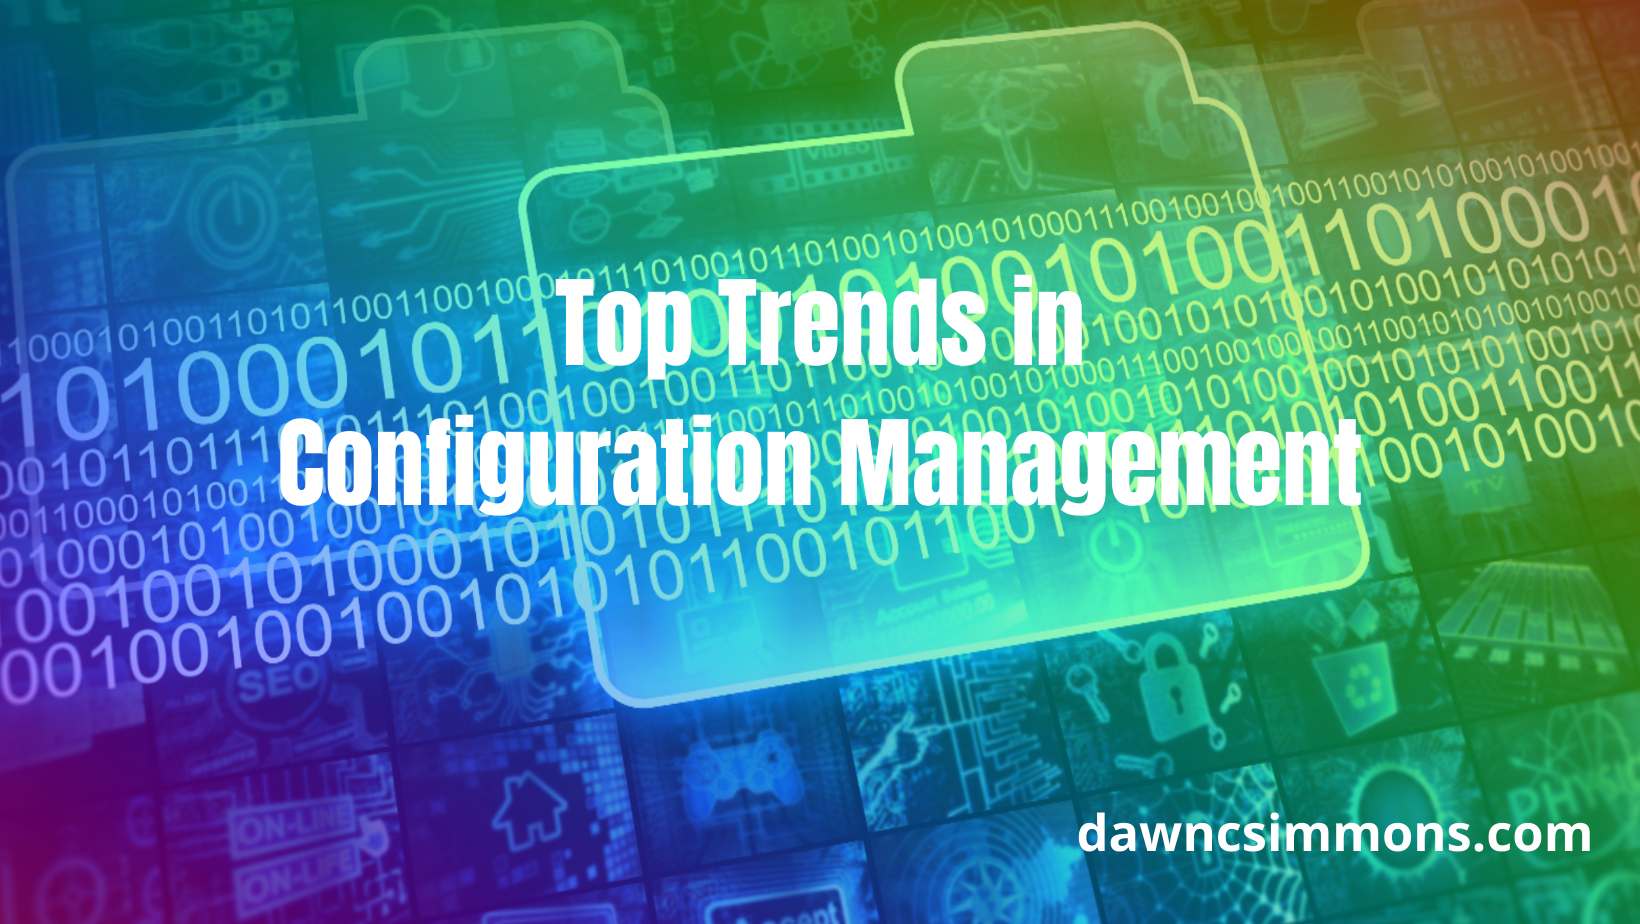 ITSM & Configuration Management Trends